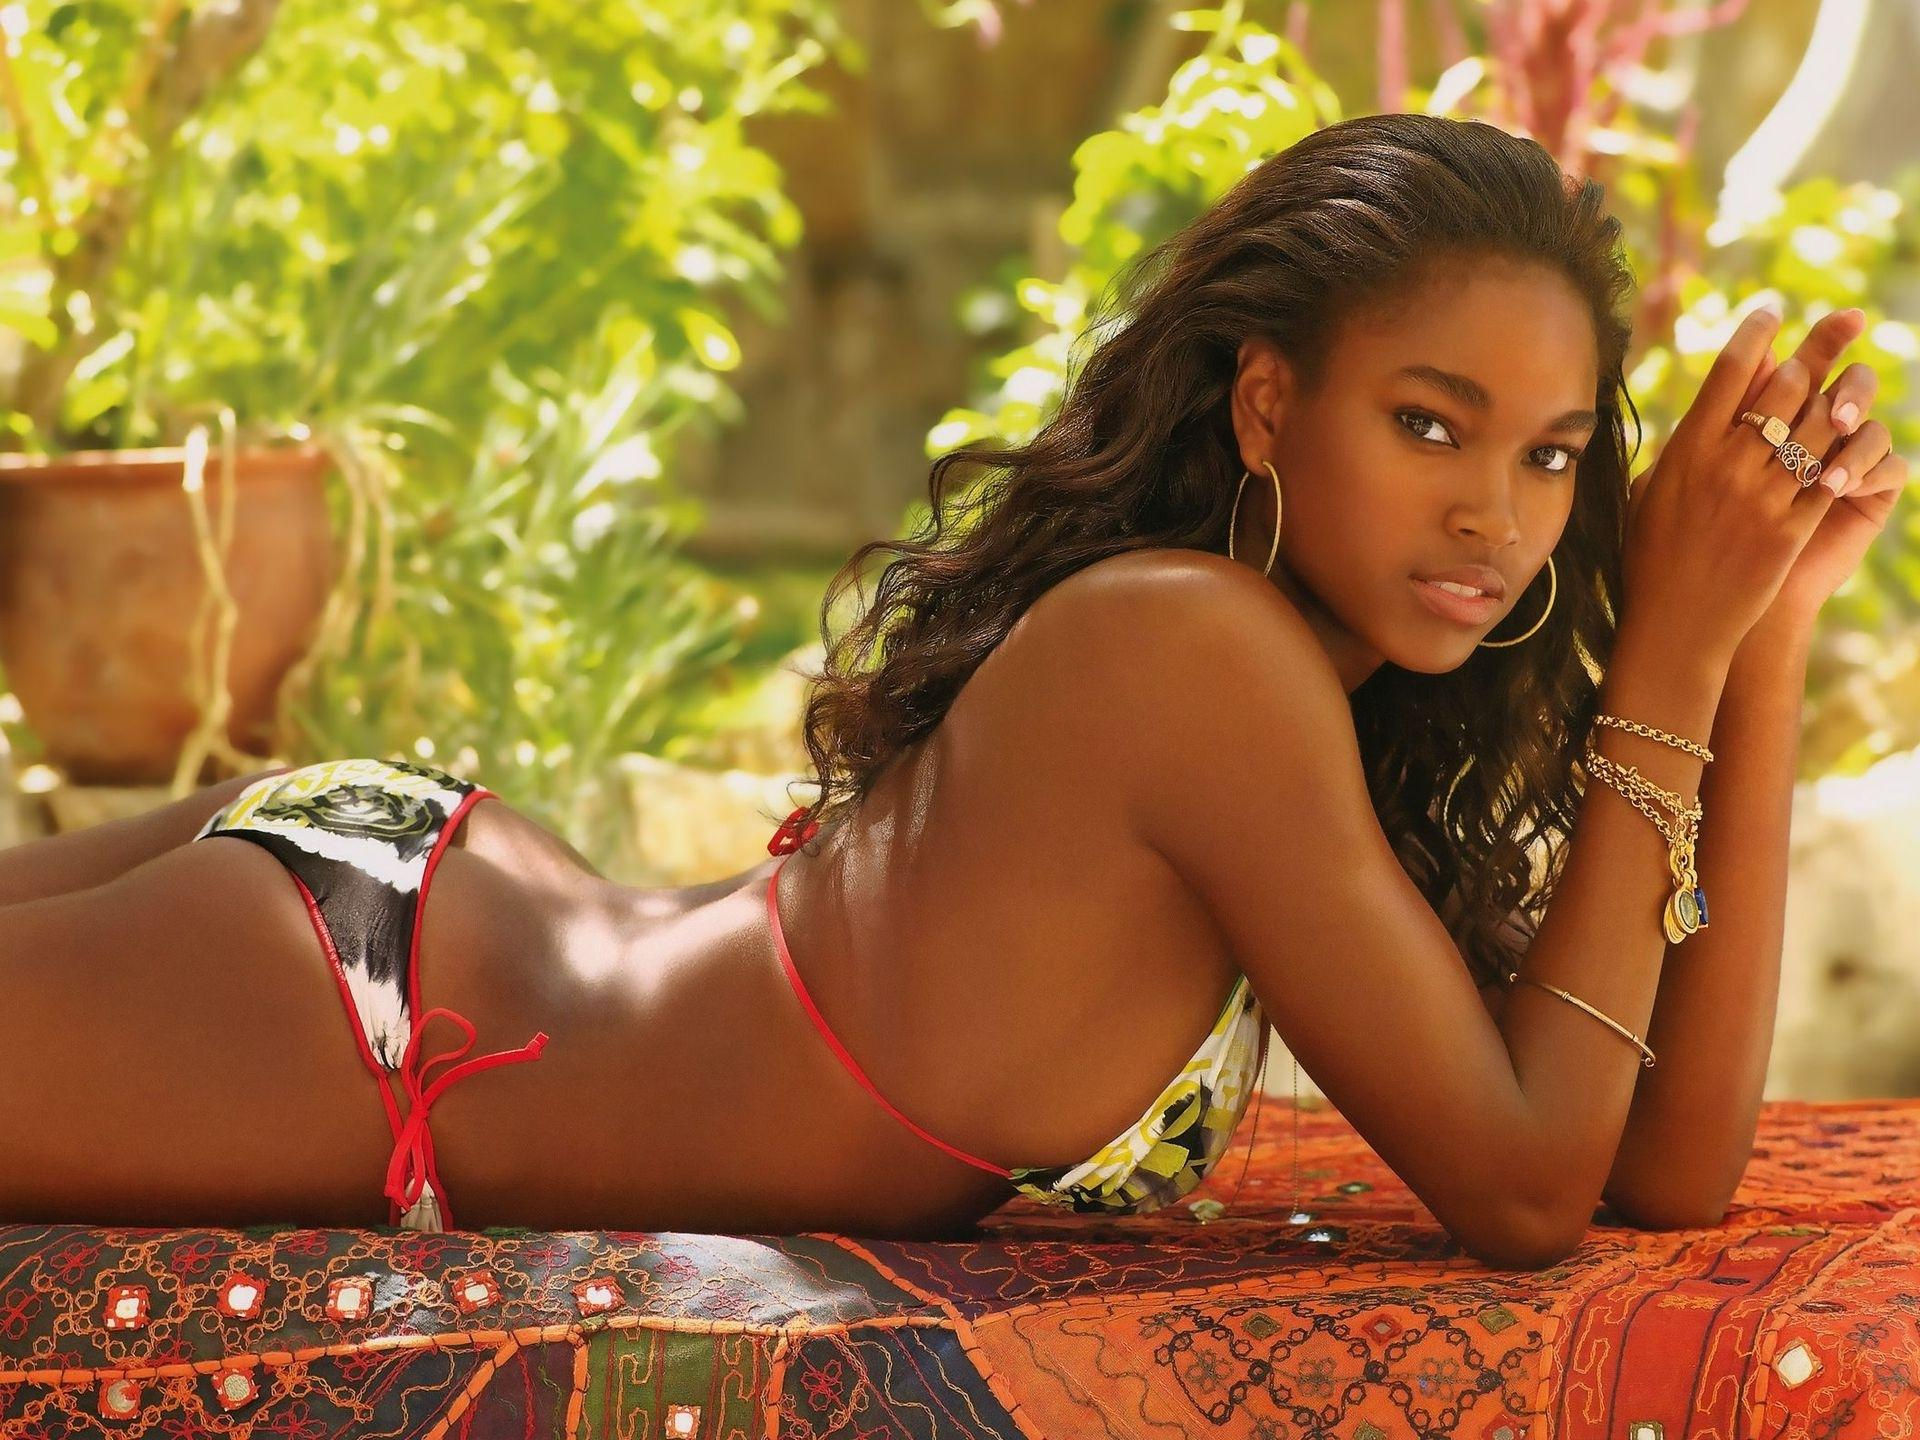 Hot black girl photos